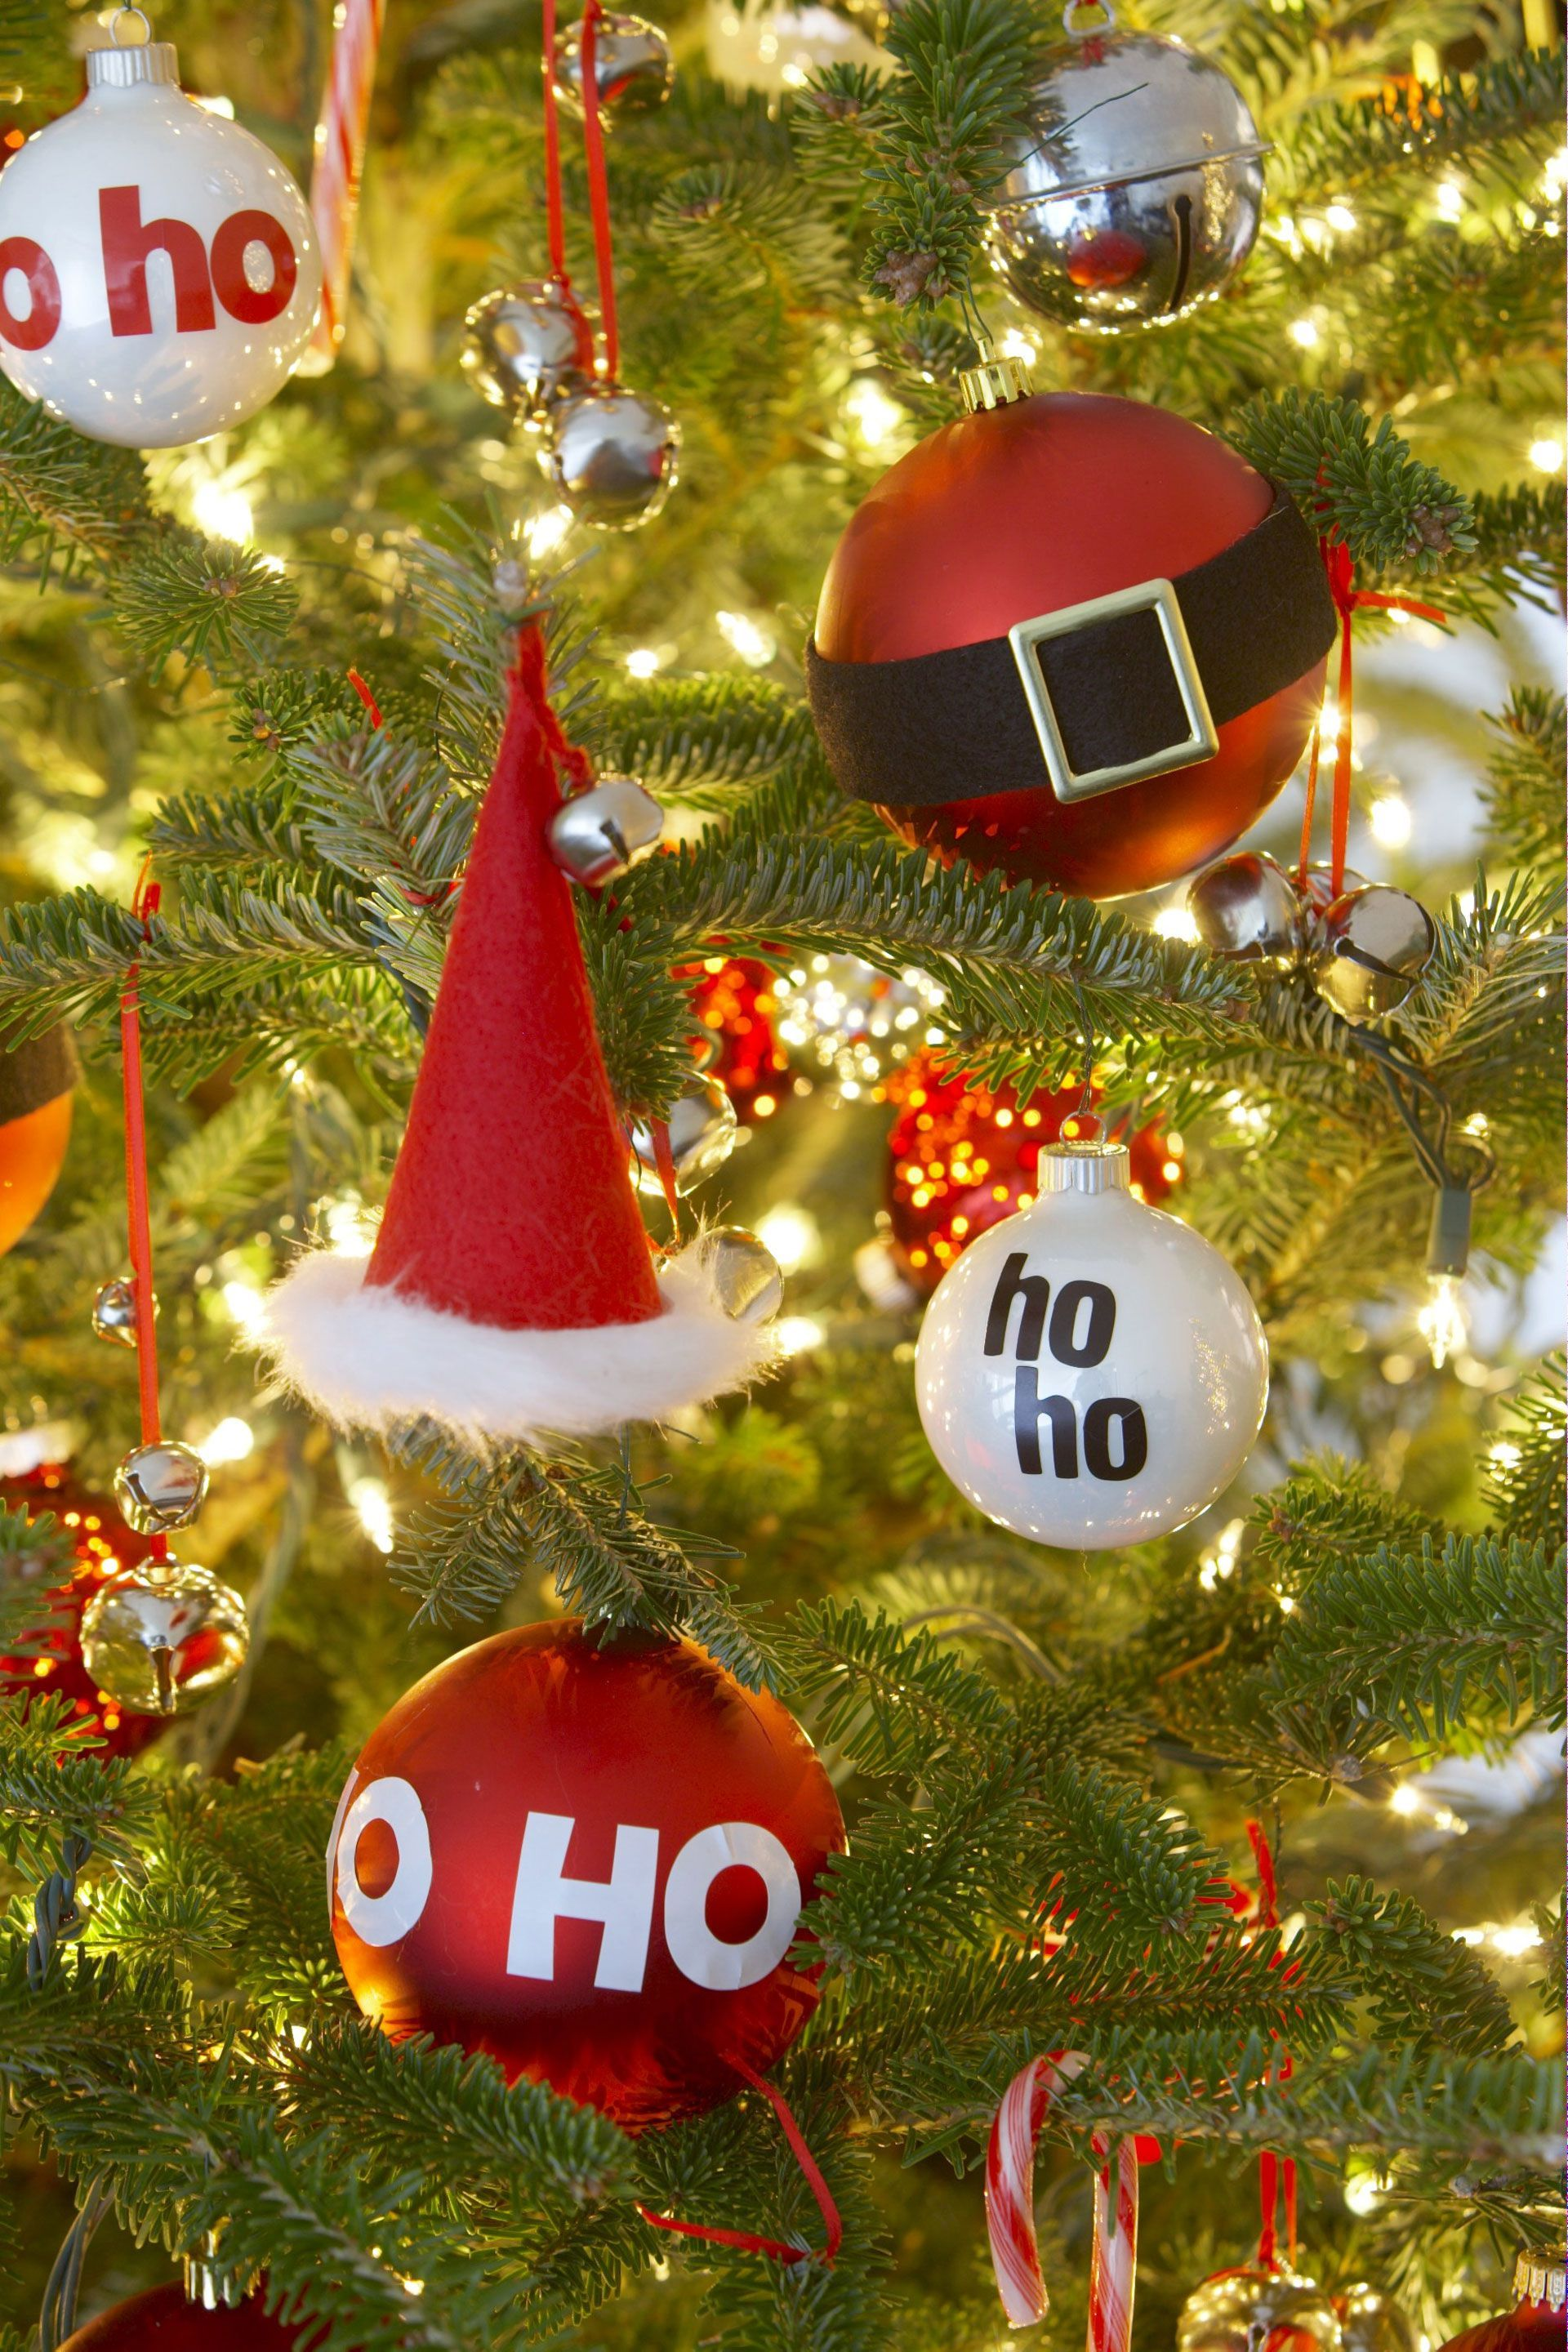 55 Homemade Christmas Ornaments for Your Tree crafts